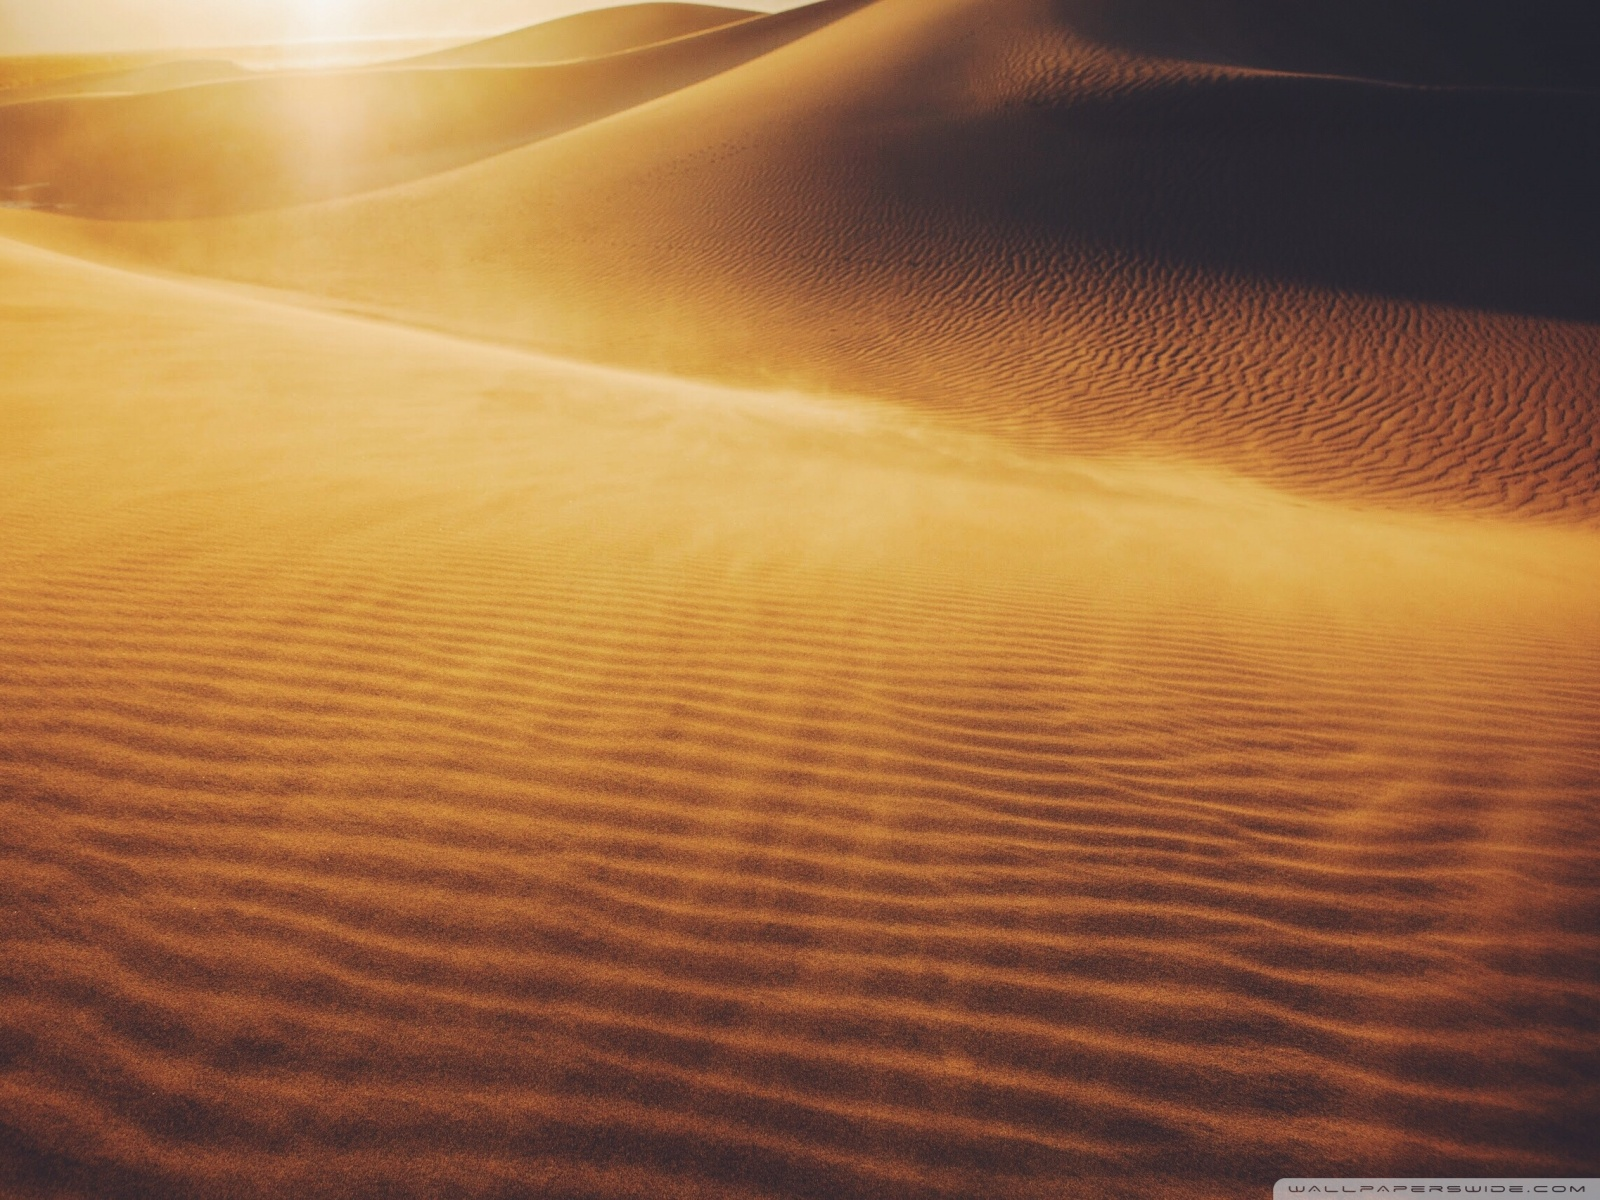 Free Mesquite Flat Sand Dunes, Death Valley phone wallpaper by berrynielly